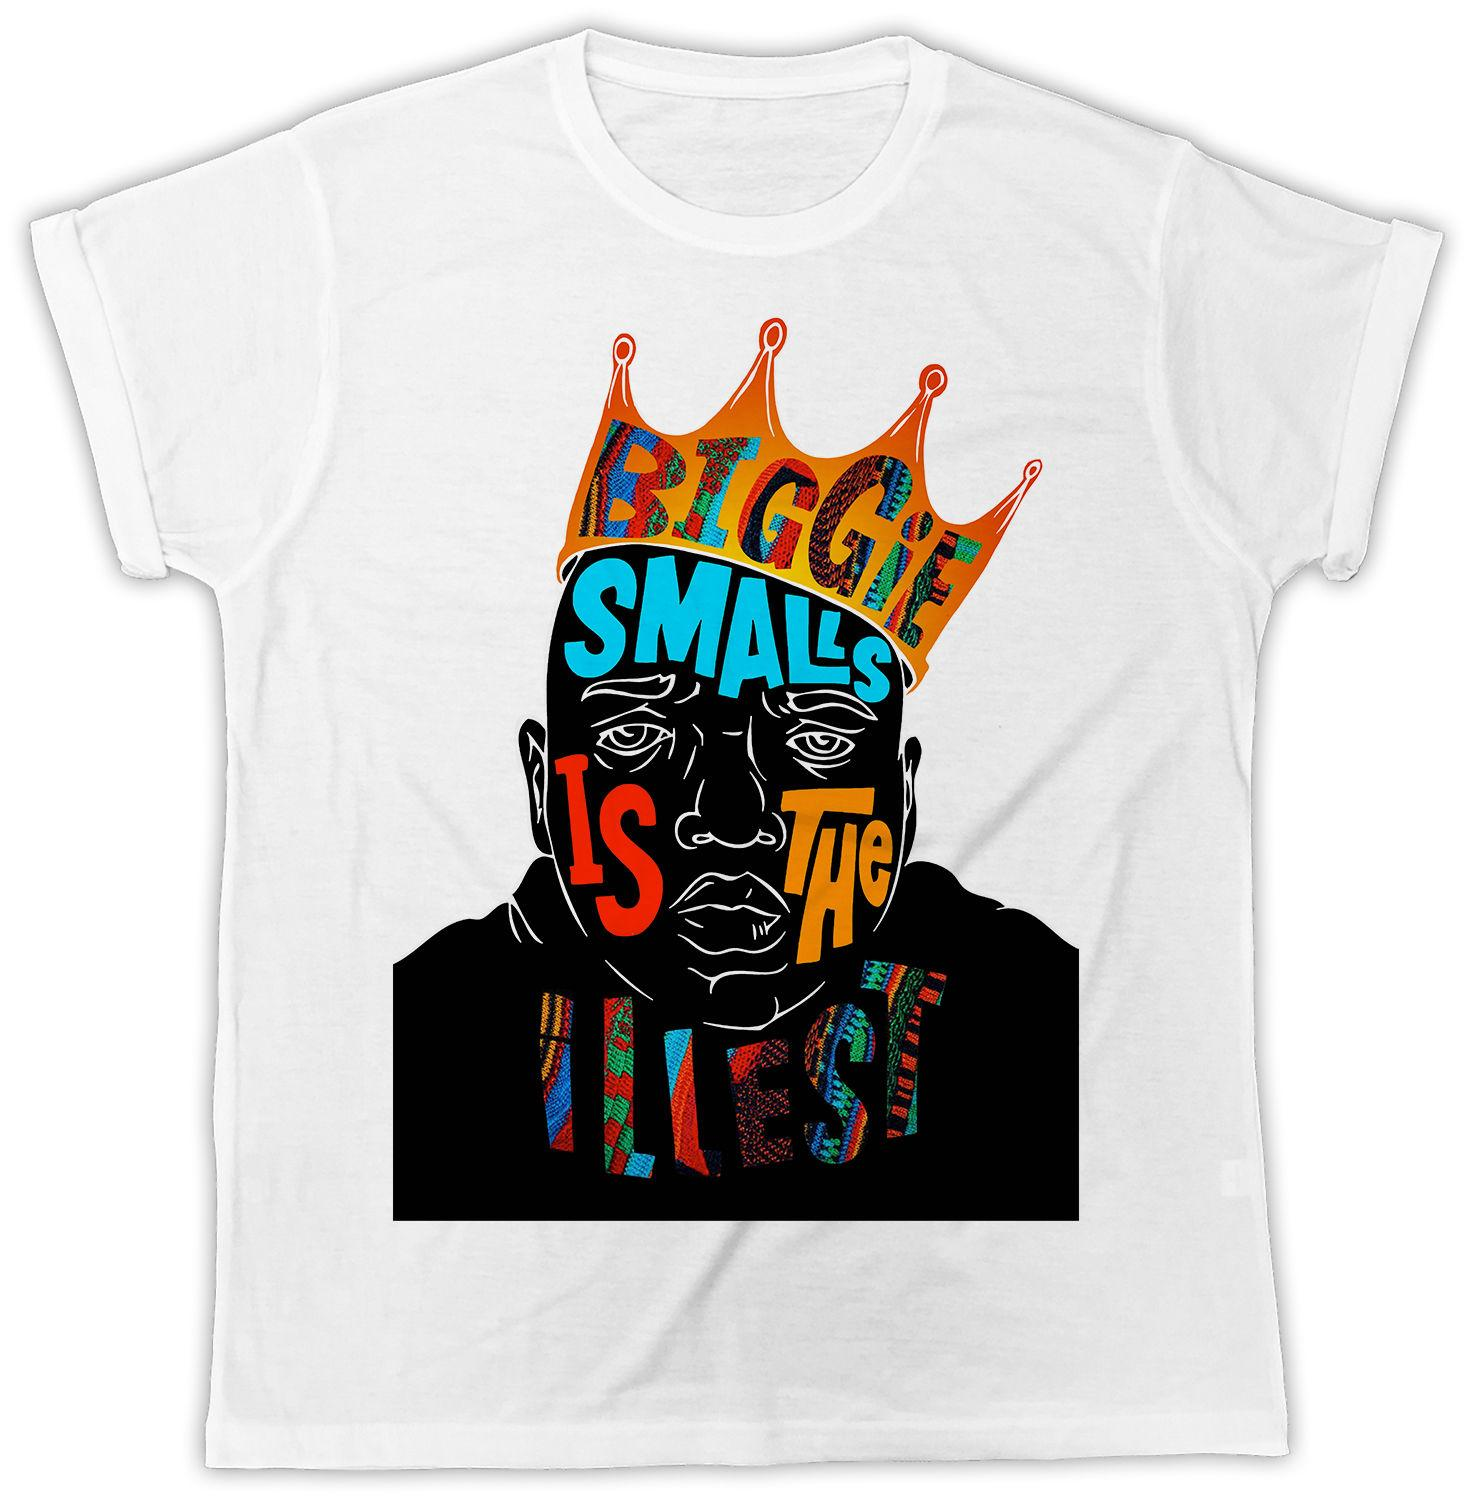 a57dc5513cbf BIGGIE ILLEST T SHIRT NOTORIOUS B.I.G SMALLS GANGSTER RAPPER PRESENT T SHIRT  Hoodie Hip Hop T Shirt Discounted T Shirts Tee Shirt Of The Day From  Shirtcup, ...